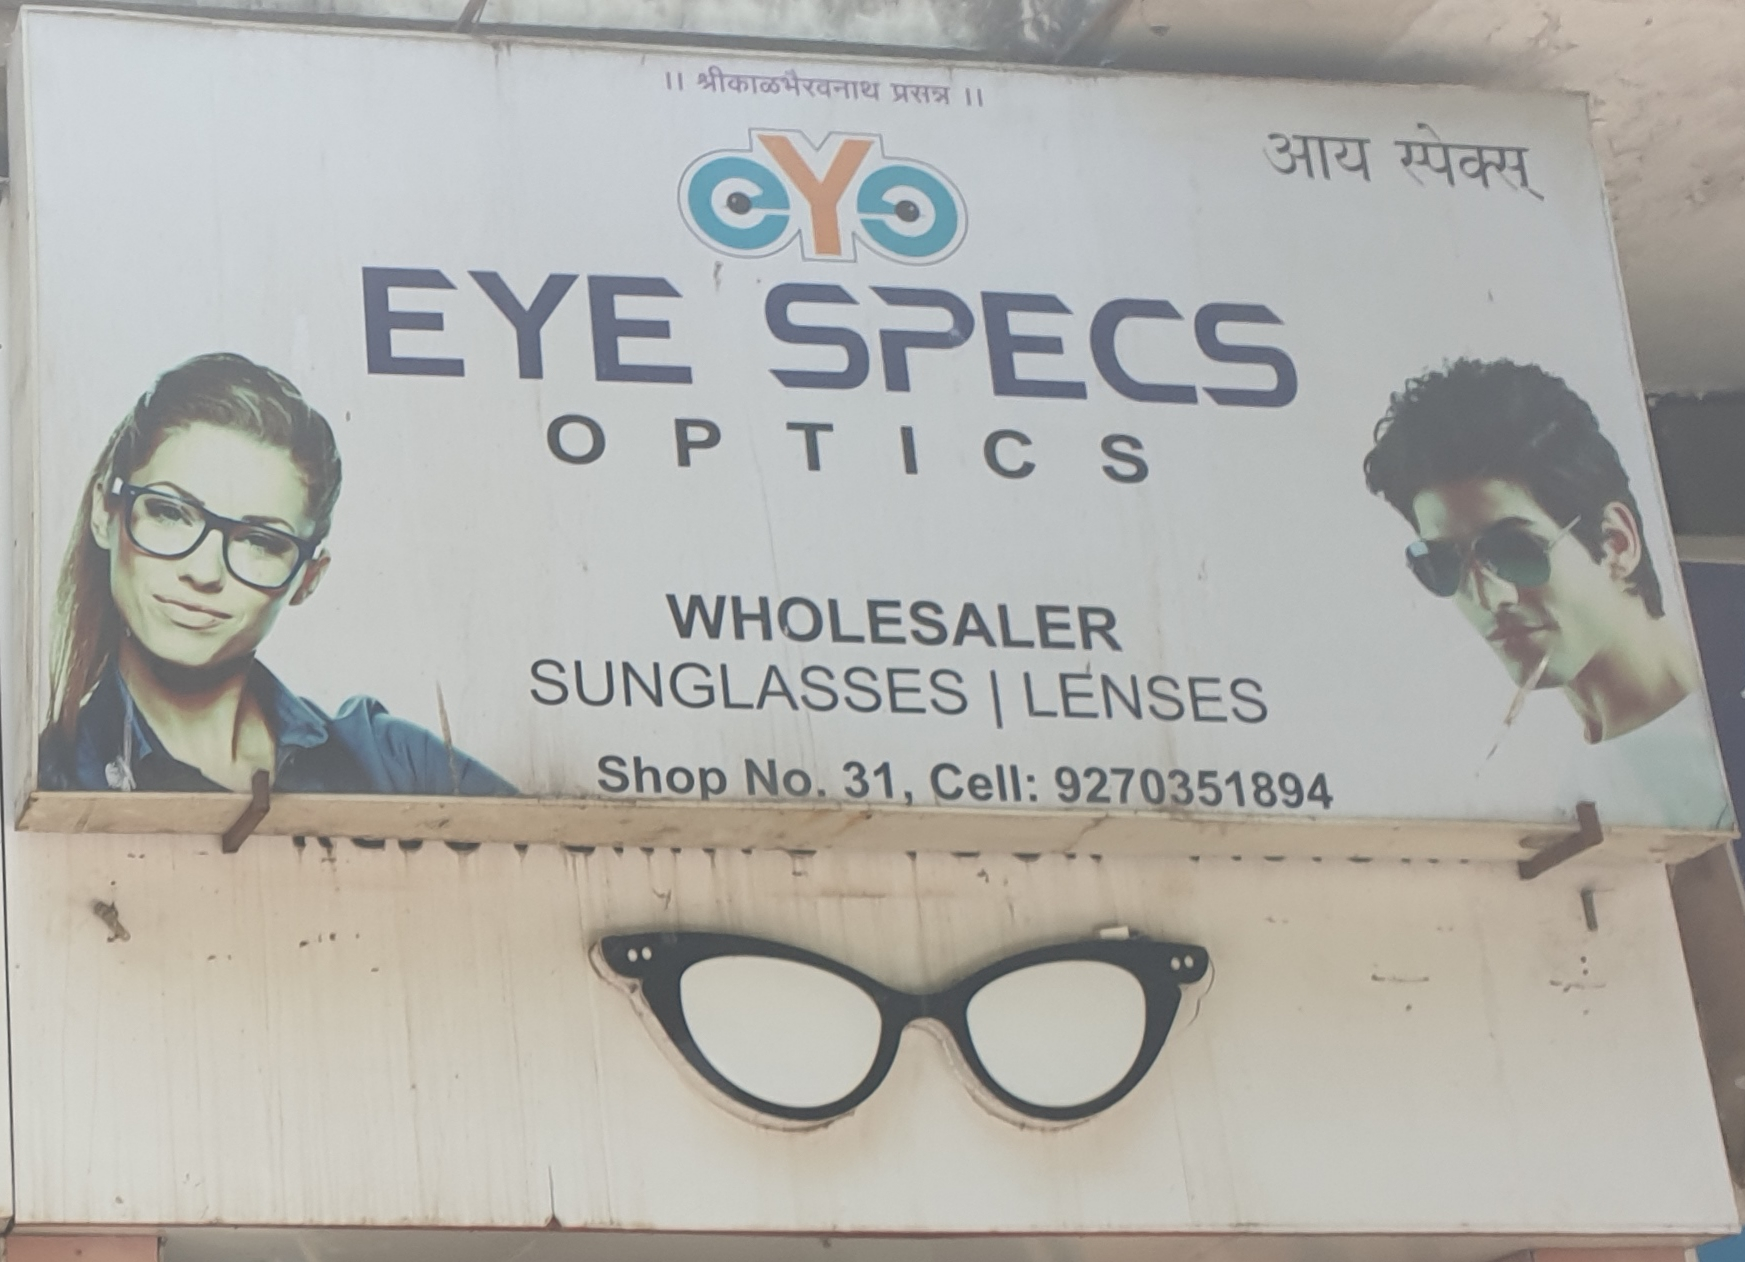 Eye specs optics Optician in Wanwadi Pune